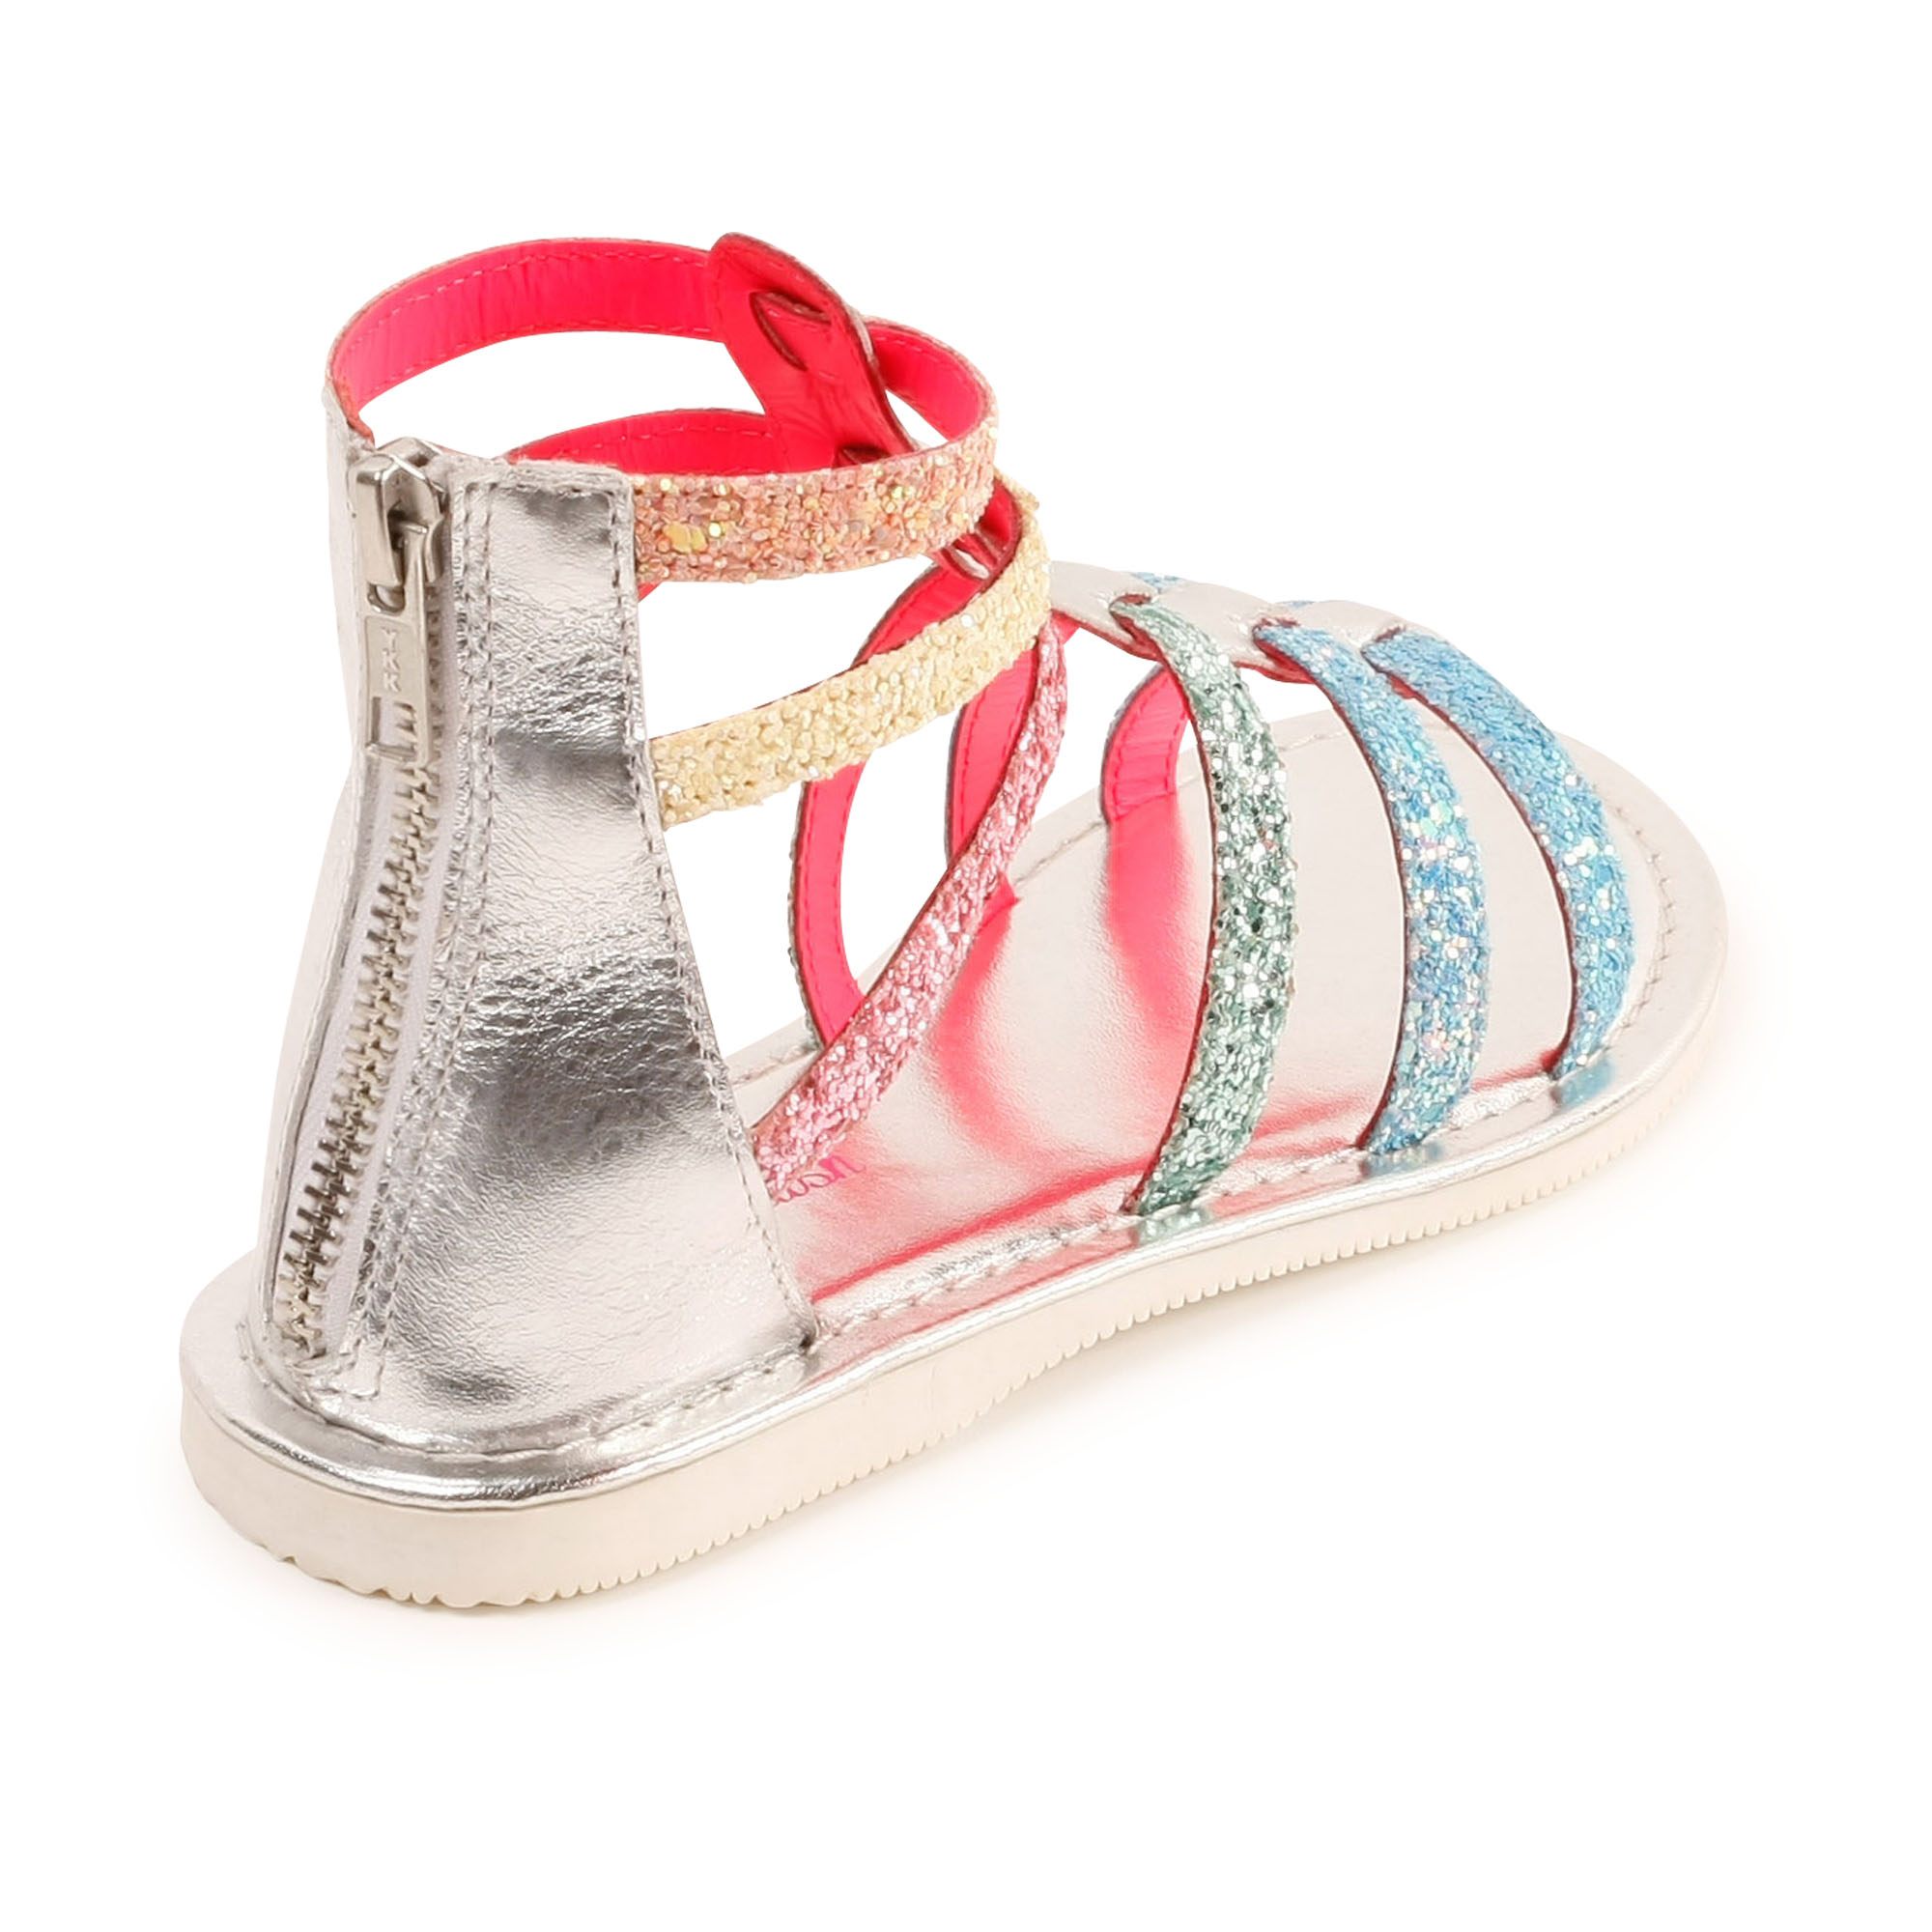 Sequined leather sandals BILLIEBLUSH for GIRL